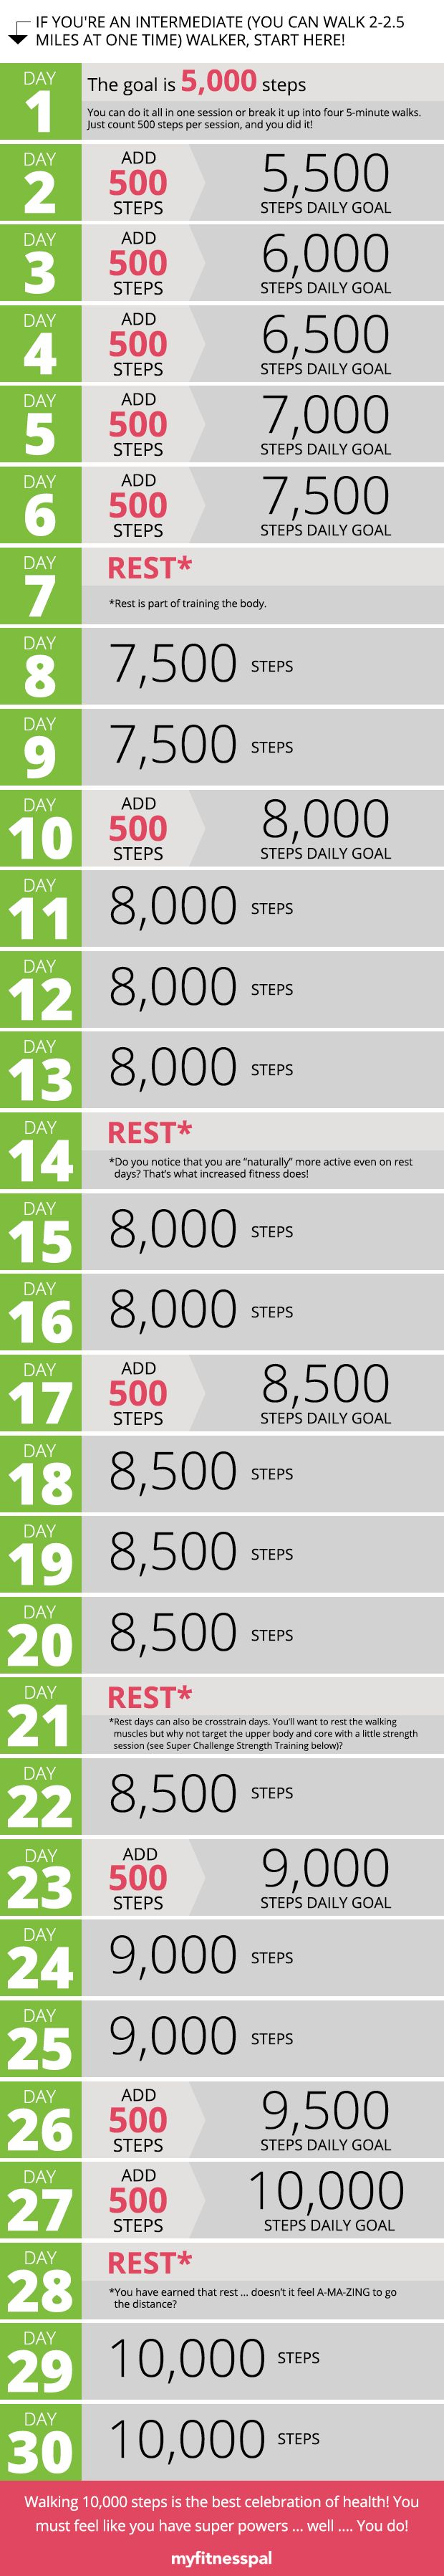 Want to reach 10,000 steps a day in June? Take our 30-Day Walking Challenge with Leslie Sansone, and you'll improve your stamina, heart rate and energy level! #myfitnesspal